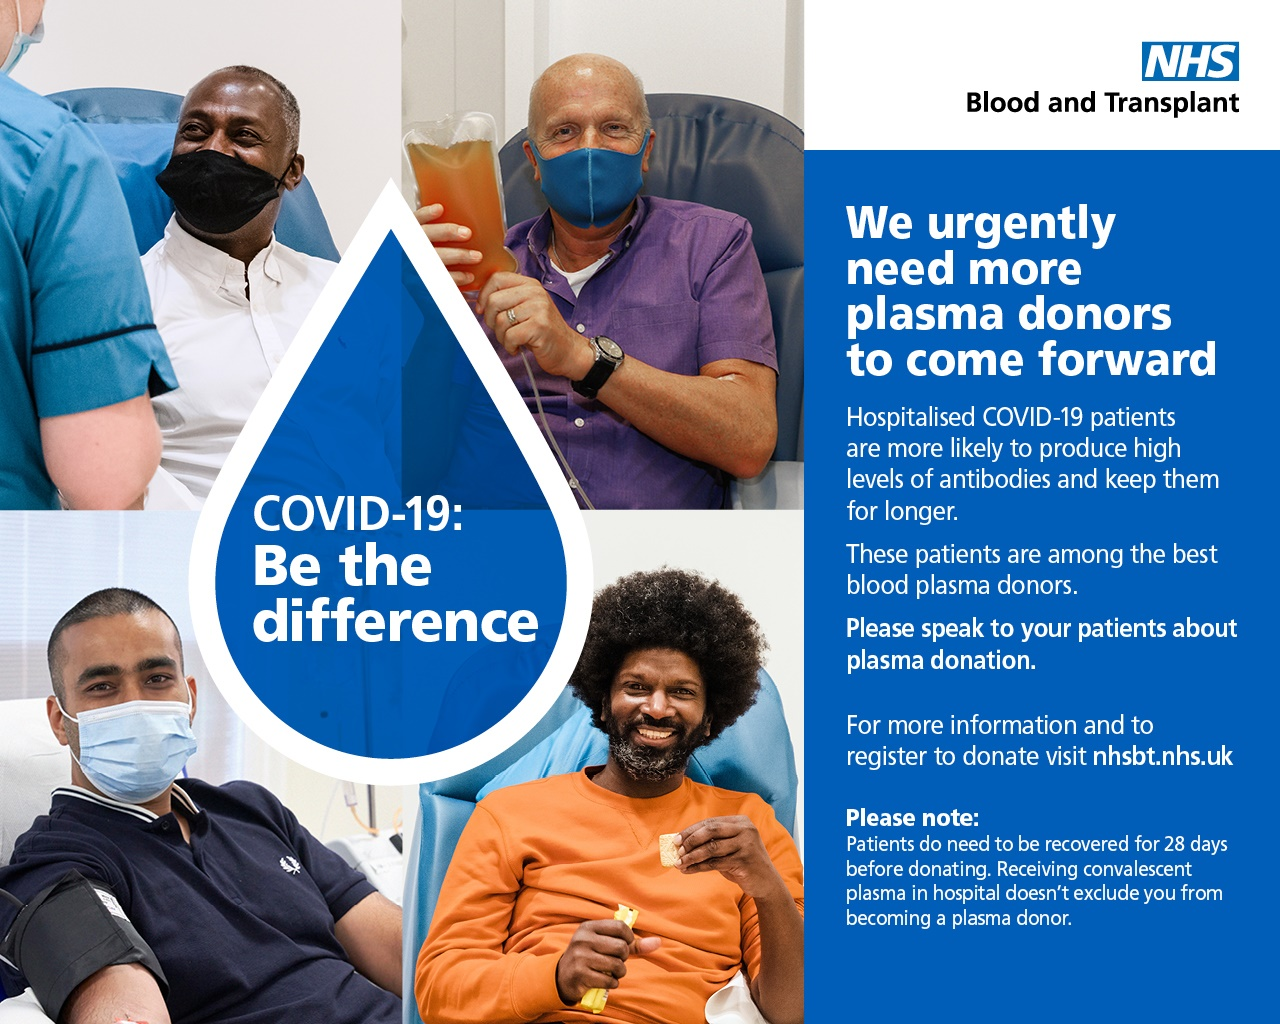 COVID-19: Be the difference, Donated blood plasma from people who have recovered could save lives.  Search donate plasma or visit nhsbt.nhs.uk